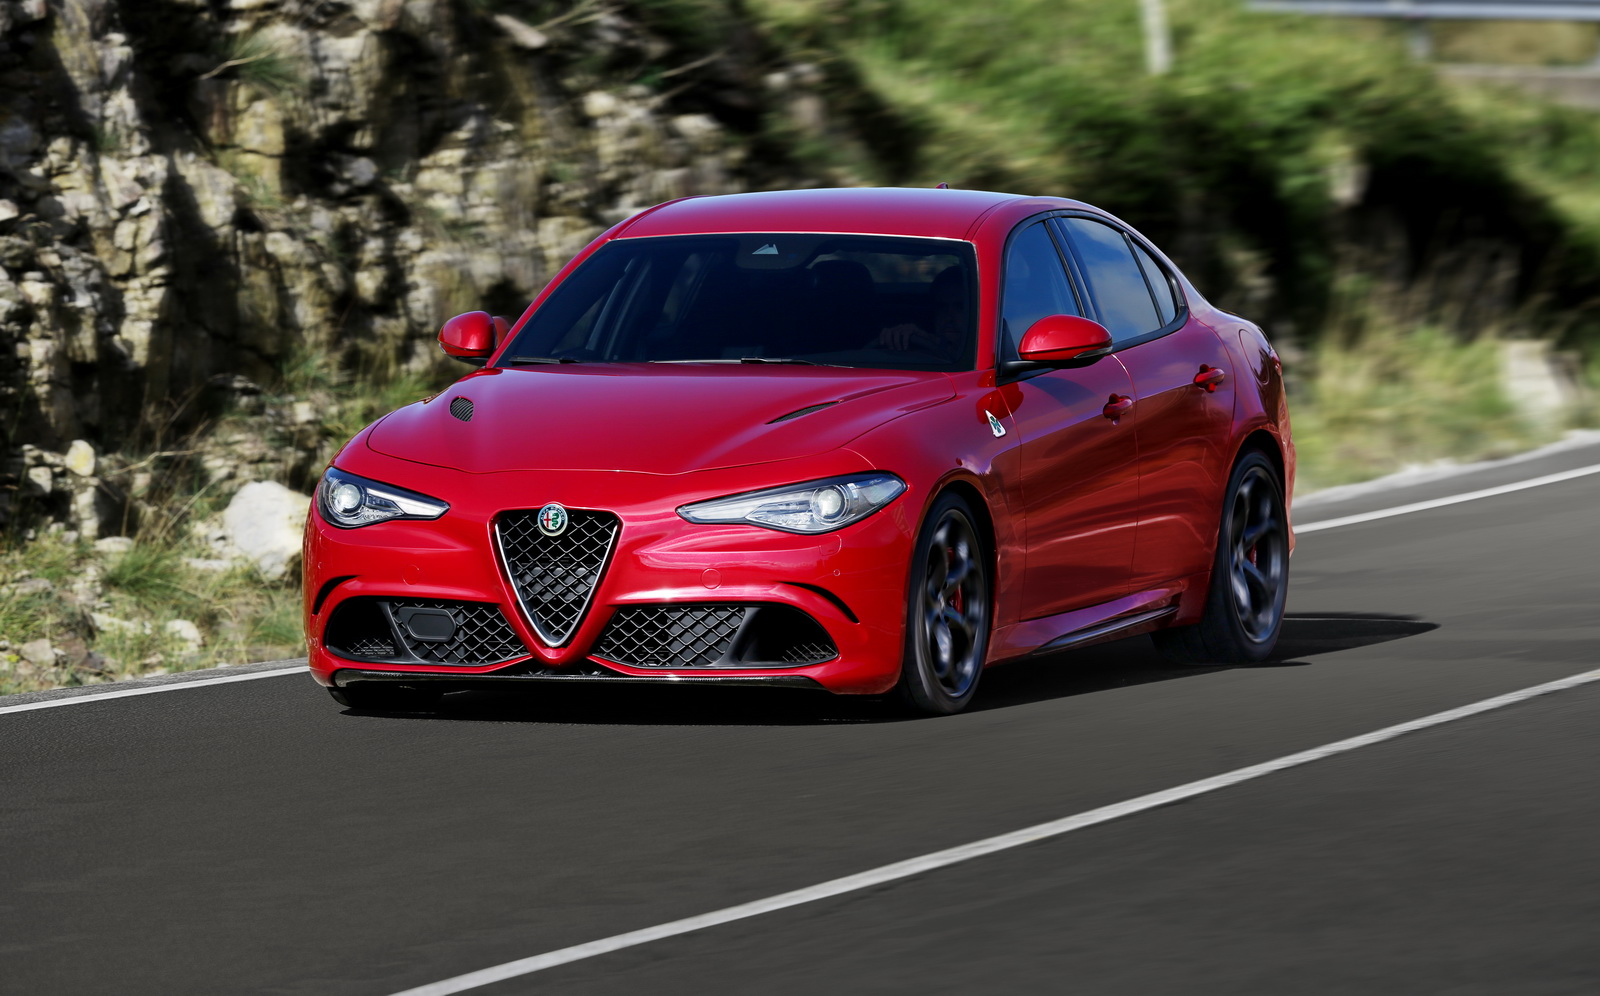 alfa romeo giulia qv priced and laps nurburgring in 7 39 gtspirit. Black Bedroom Furniture Sets. Home Design Ideas